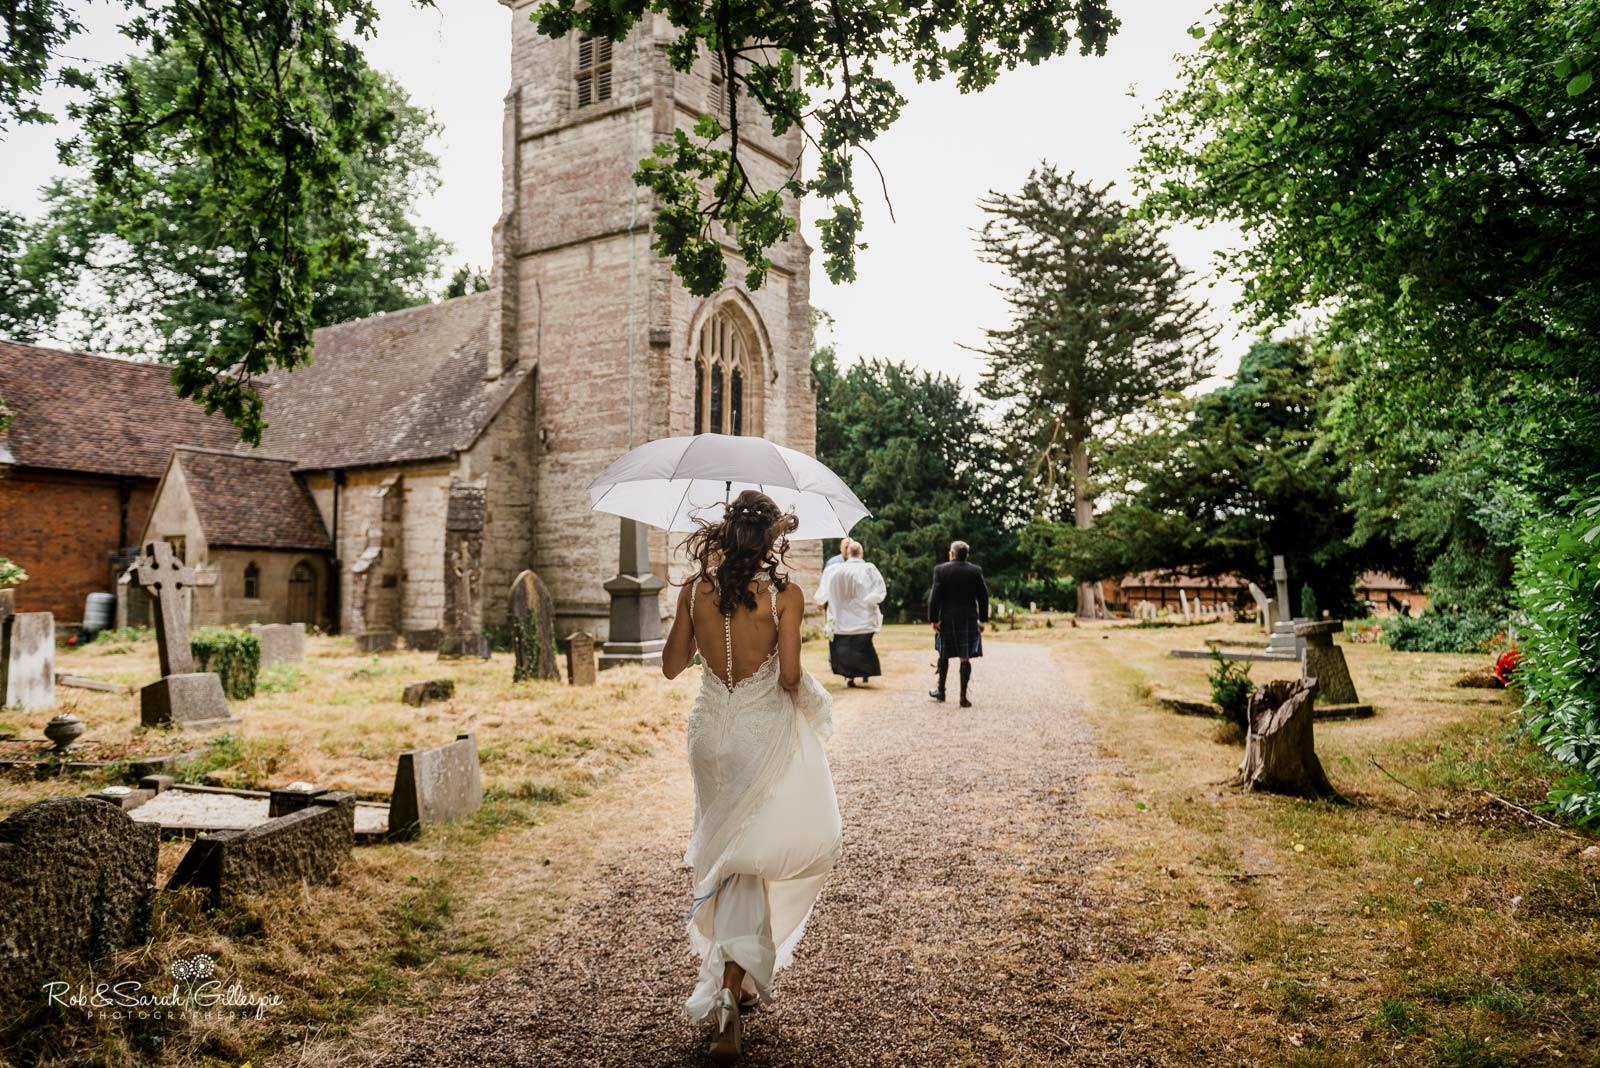 Bride walks to wedding at St Giles church Packwood